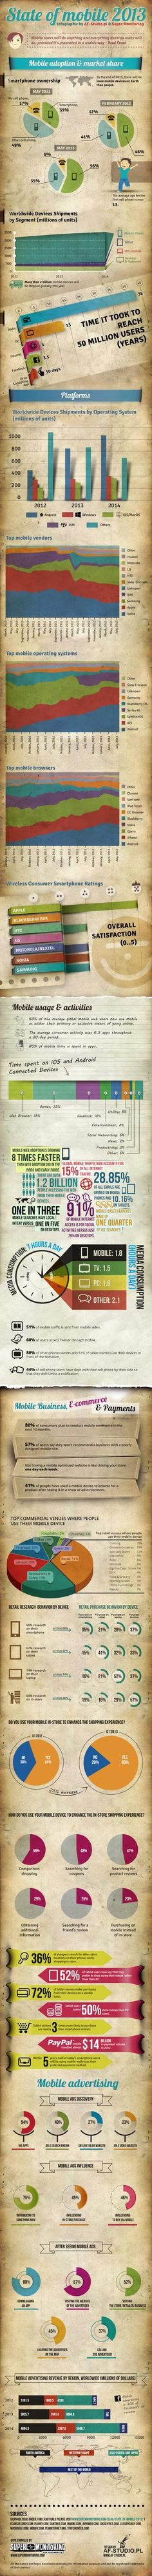 Mobiles Internet - state of mobile 2013 (Infografik) Mobile Marketing, Mobile Advertising, Marketing Digital, Inbound Marketing, Internet Marketing, Online Marketing, Social Media Marketing, Content Marketing, Articles En Anglais